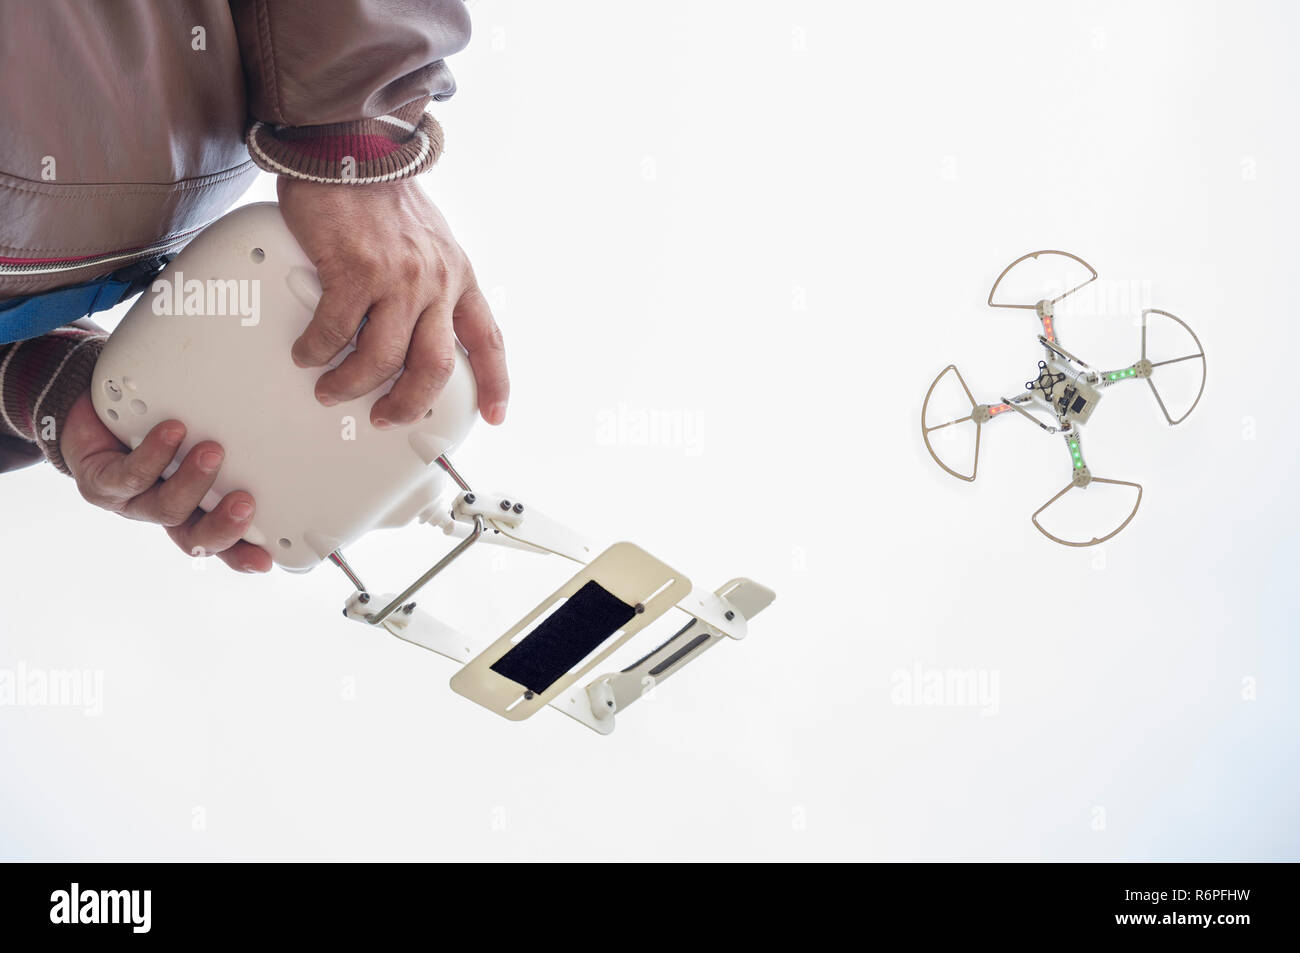 Pilot flying drone with FPV mount empty on remote controller - Stock Image